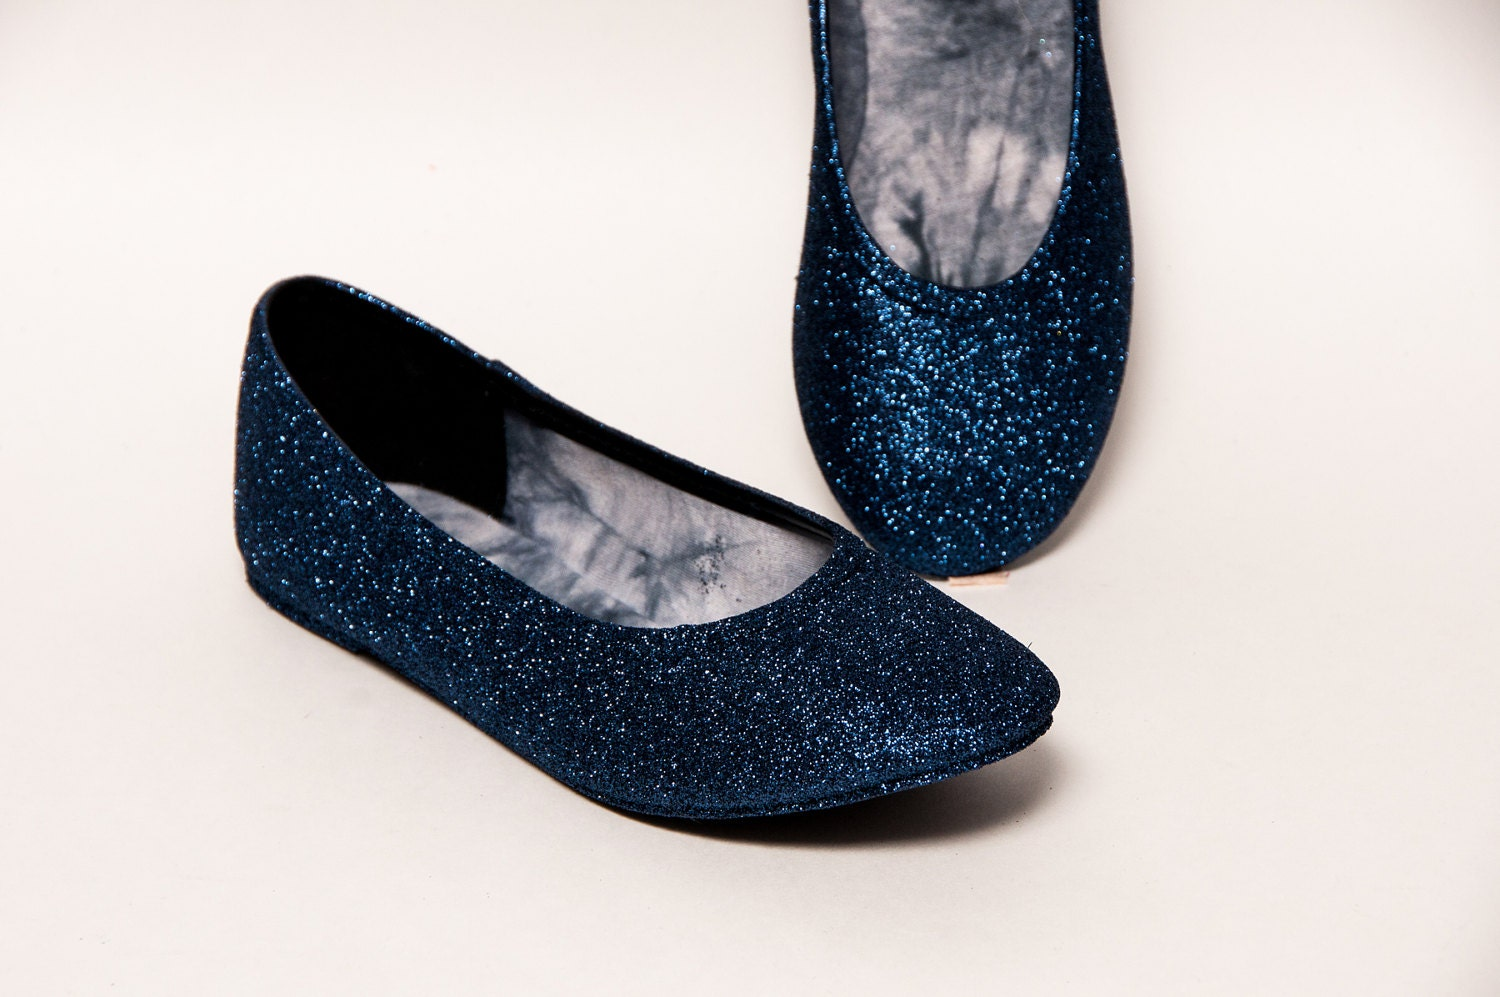 ShoBeautiful Womens Ballet Flats Glitter Cut Out Round Toe Jelly Stylish Slip On Comfort Loafer Casual Walking Shoes KR1 Silver Sold by zabiva. $ Walking Cradles Womens Blue Leather Closed Toe Ballet Flats. Sold by PairMySole. $ $ Wanted Shoes Womens Kristy Closed Toe Ballet Flats.